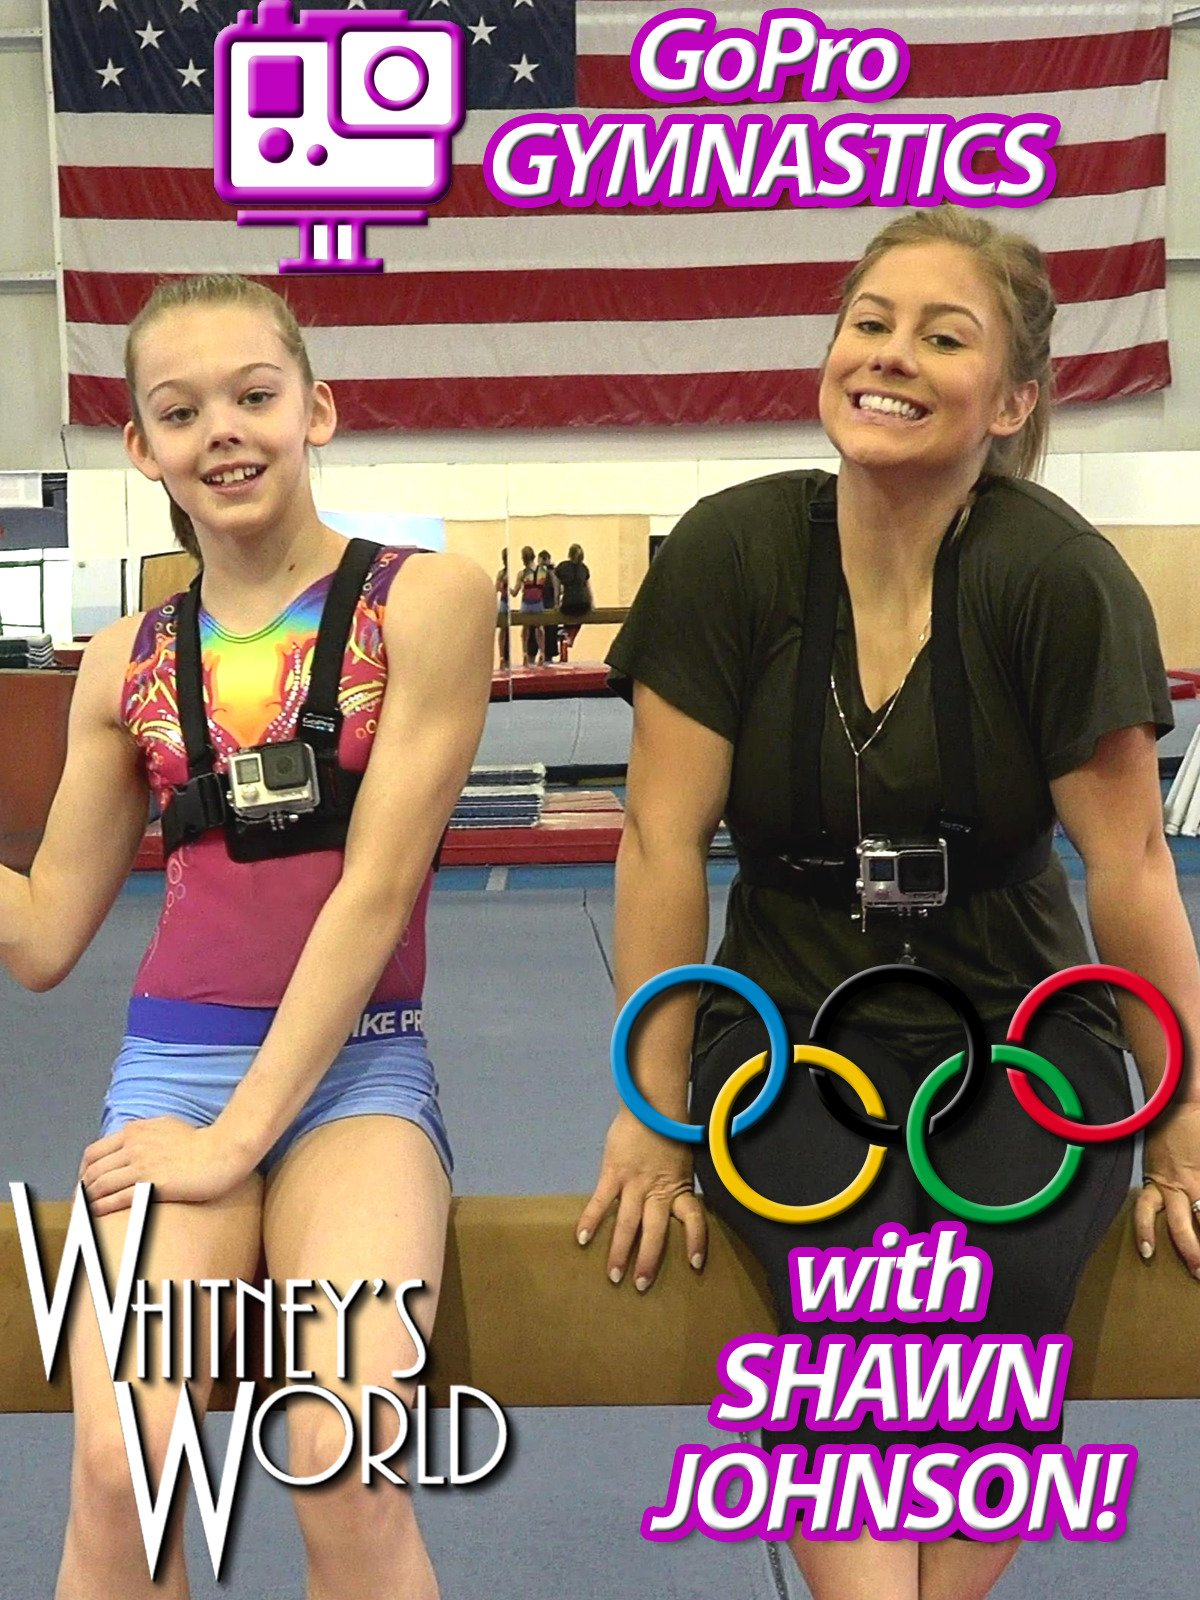 GoPro Gymnastics with Shawn Johnson